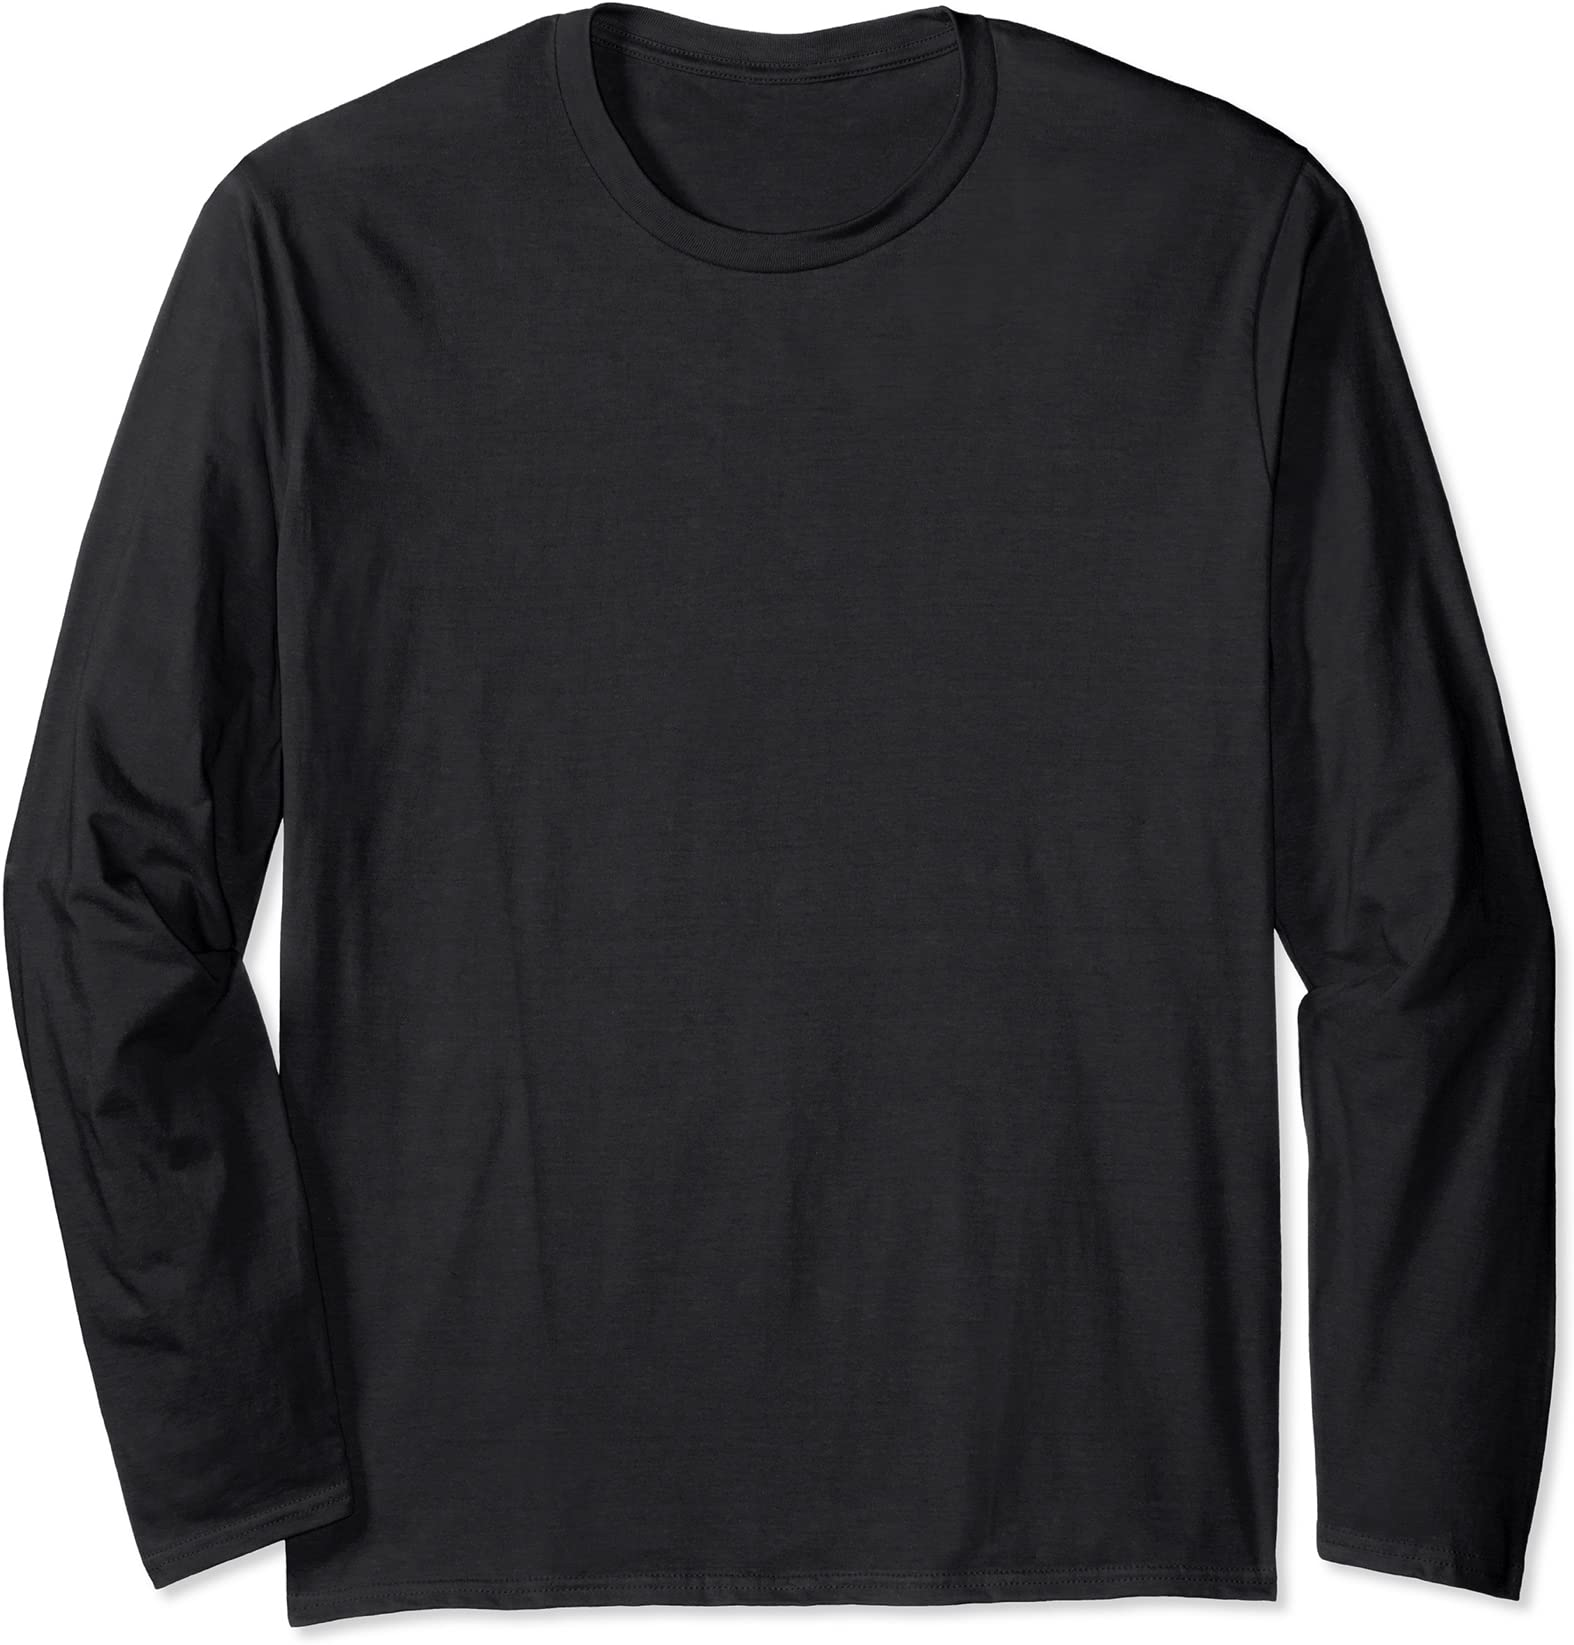 Breaking The Silence On Domestic Violence Long Sleeve T-Shirt Unisex Gifts Domestic Violence